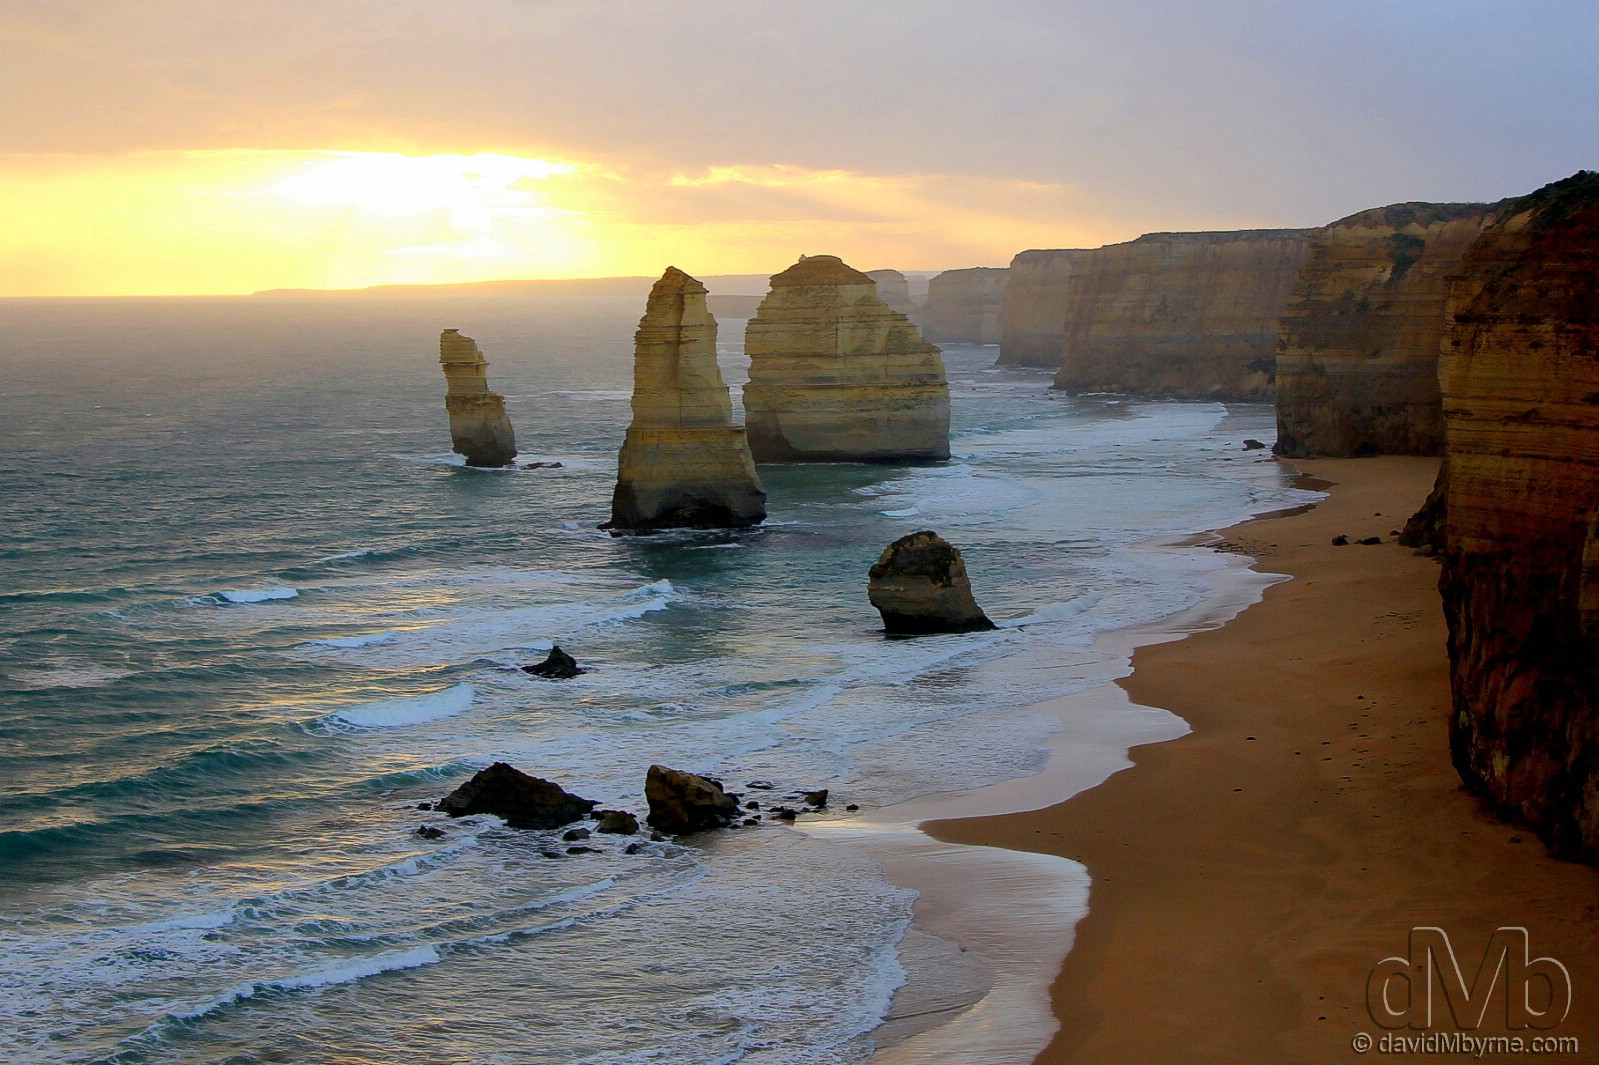 Sunset at The Twelve Apostles of the The Great Ocean Road, Victoria, Australia. April 22nd, 2012 (EOS 60D || Tamron 28-75mm | 28mm, 1/125sec, f/5.0, iso100)